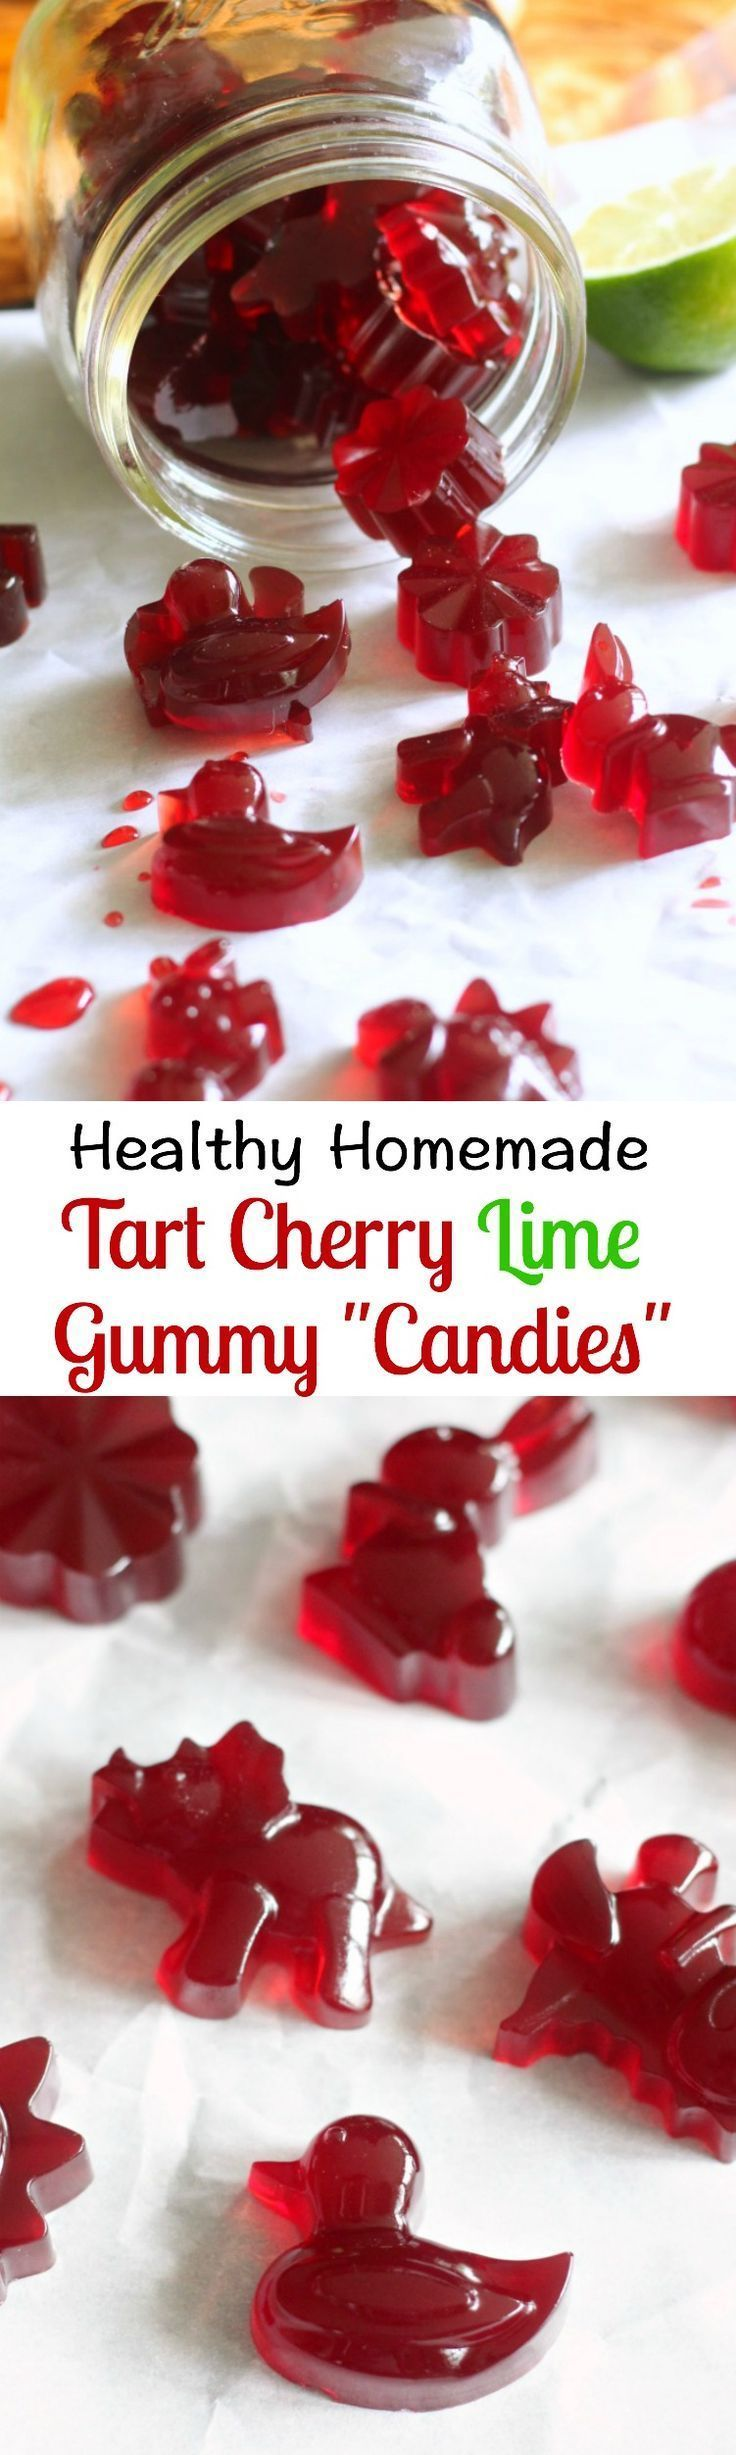 Healthy homemade tart cherry lime gummy candies made with grass fed gelatin - paleo and gut healing! Recipe sponsored by @vitalproteins(Paleo Bars Cherry)